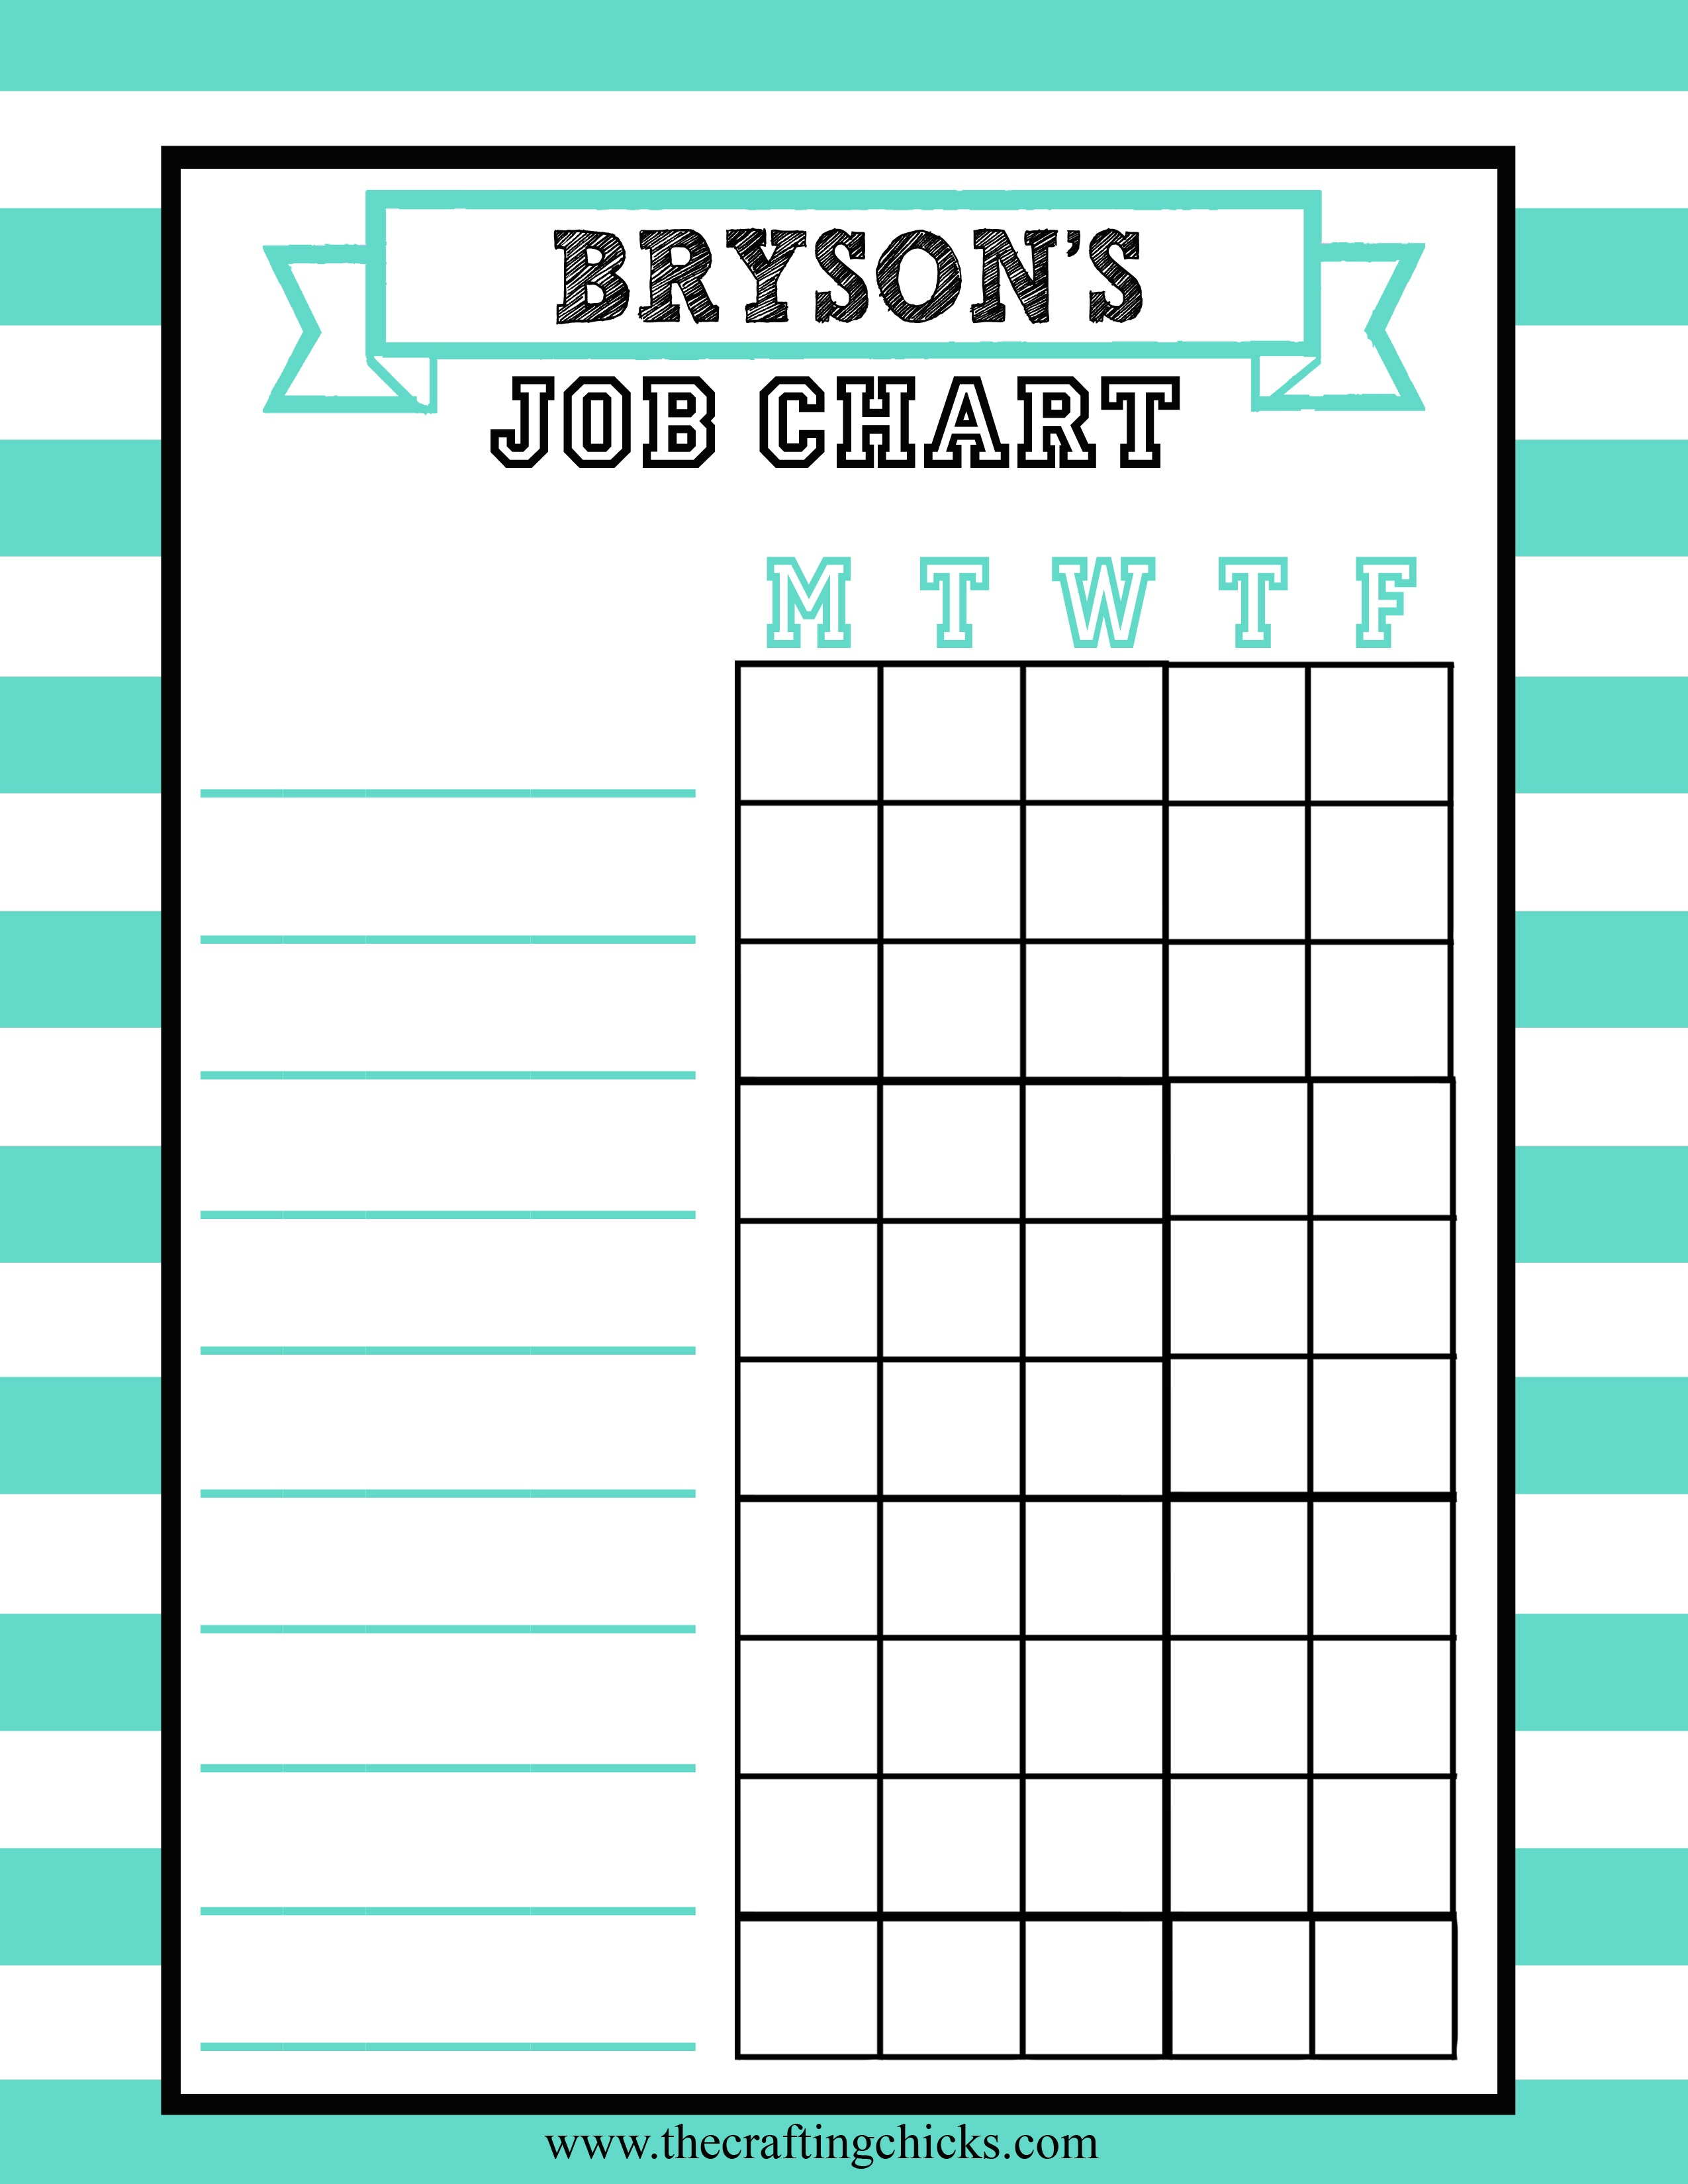 Job Charts Free Printable - The Crafting Chicks - Free Printable To Do Charts